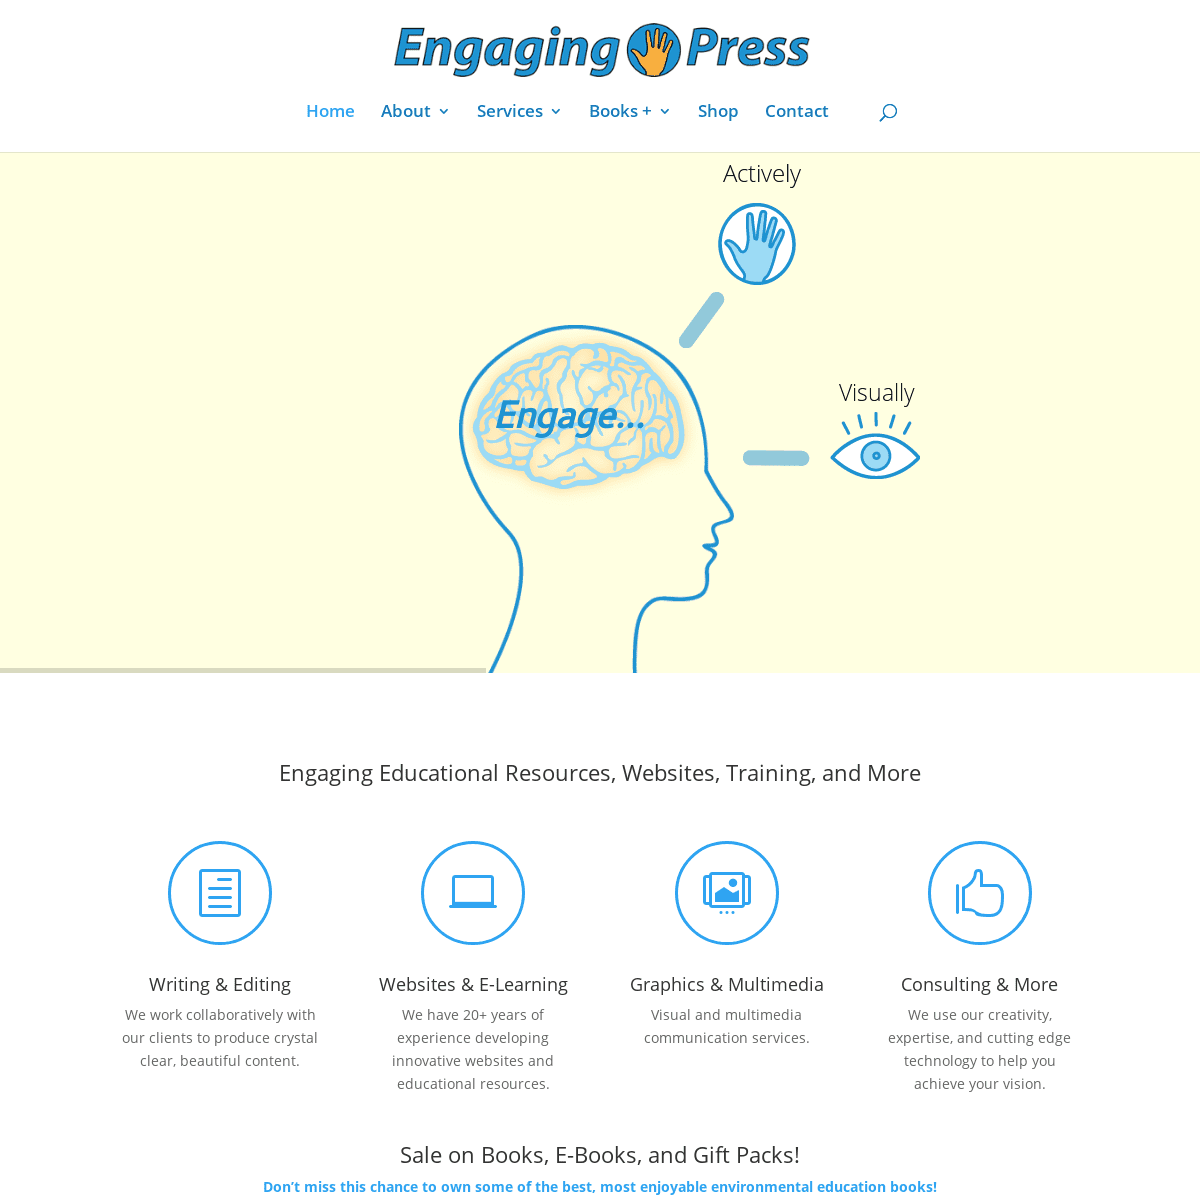 Engaging Press - Books, Curriculum Development, E-Learning, Websites & More!